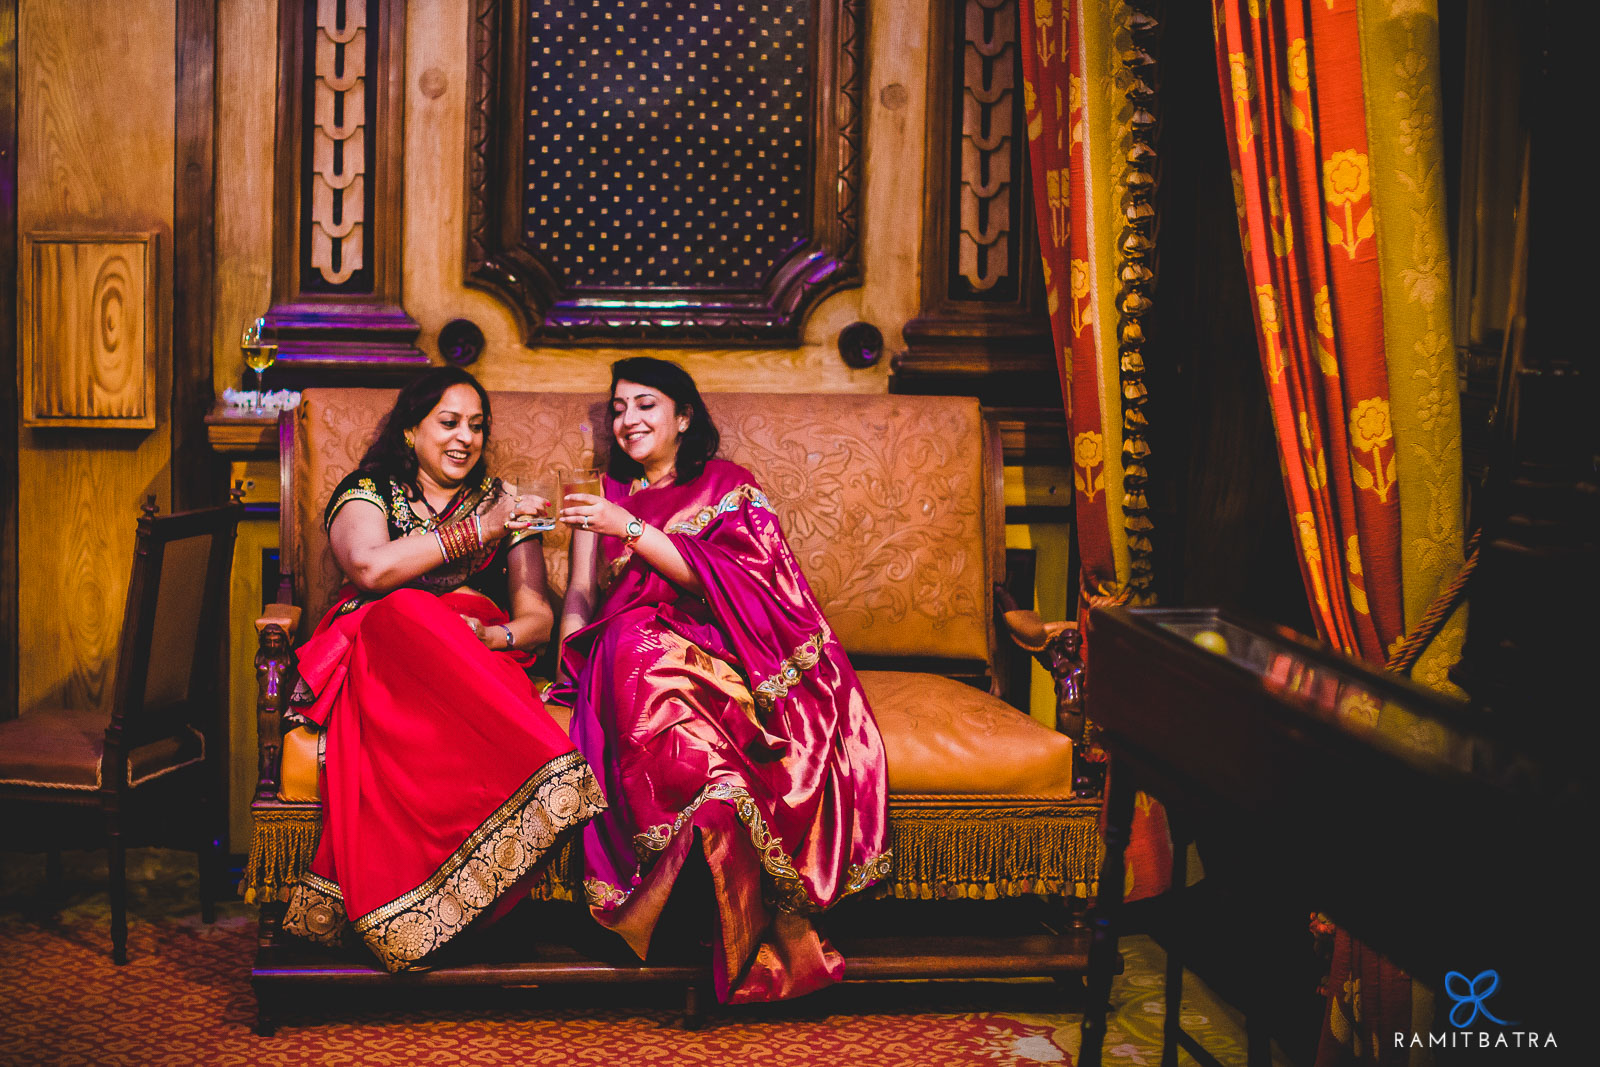 Wedding-Photographer-Hyderabad-India-RamitBatra_27